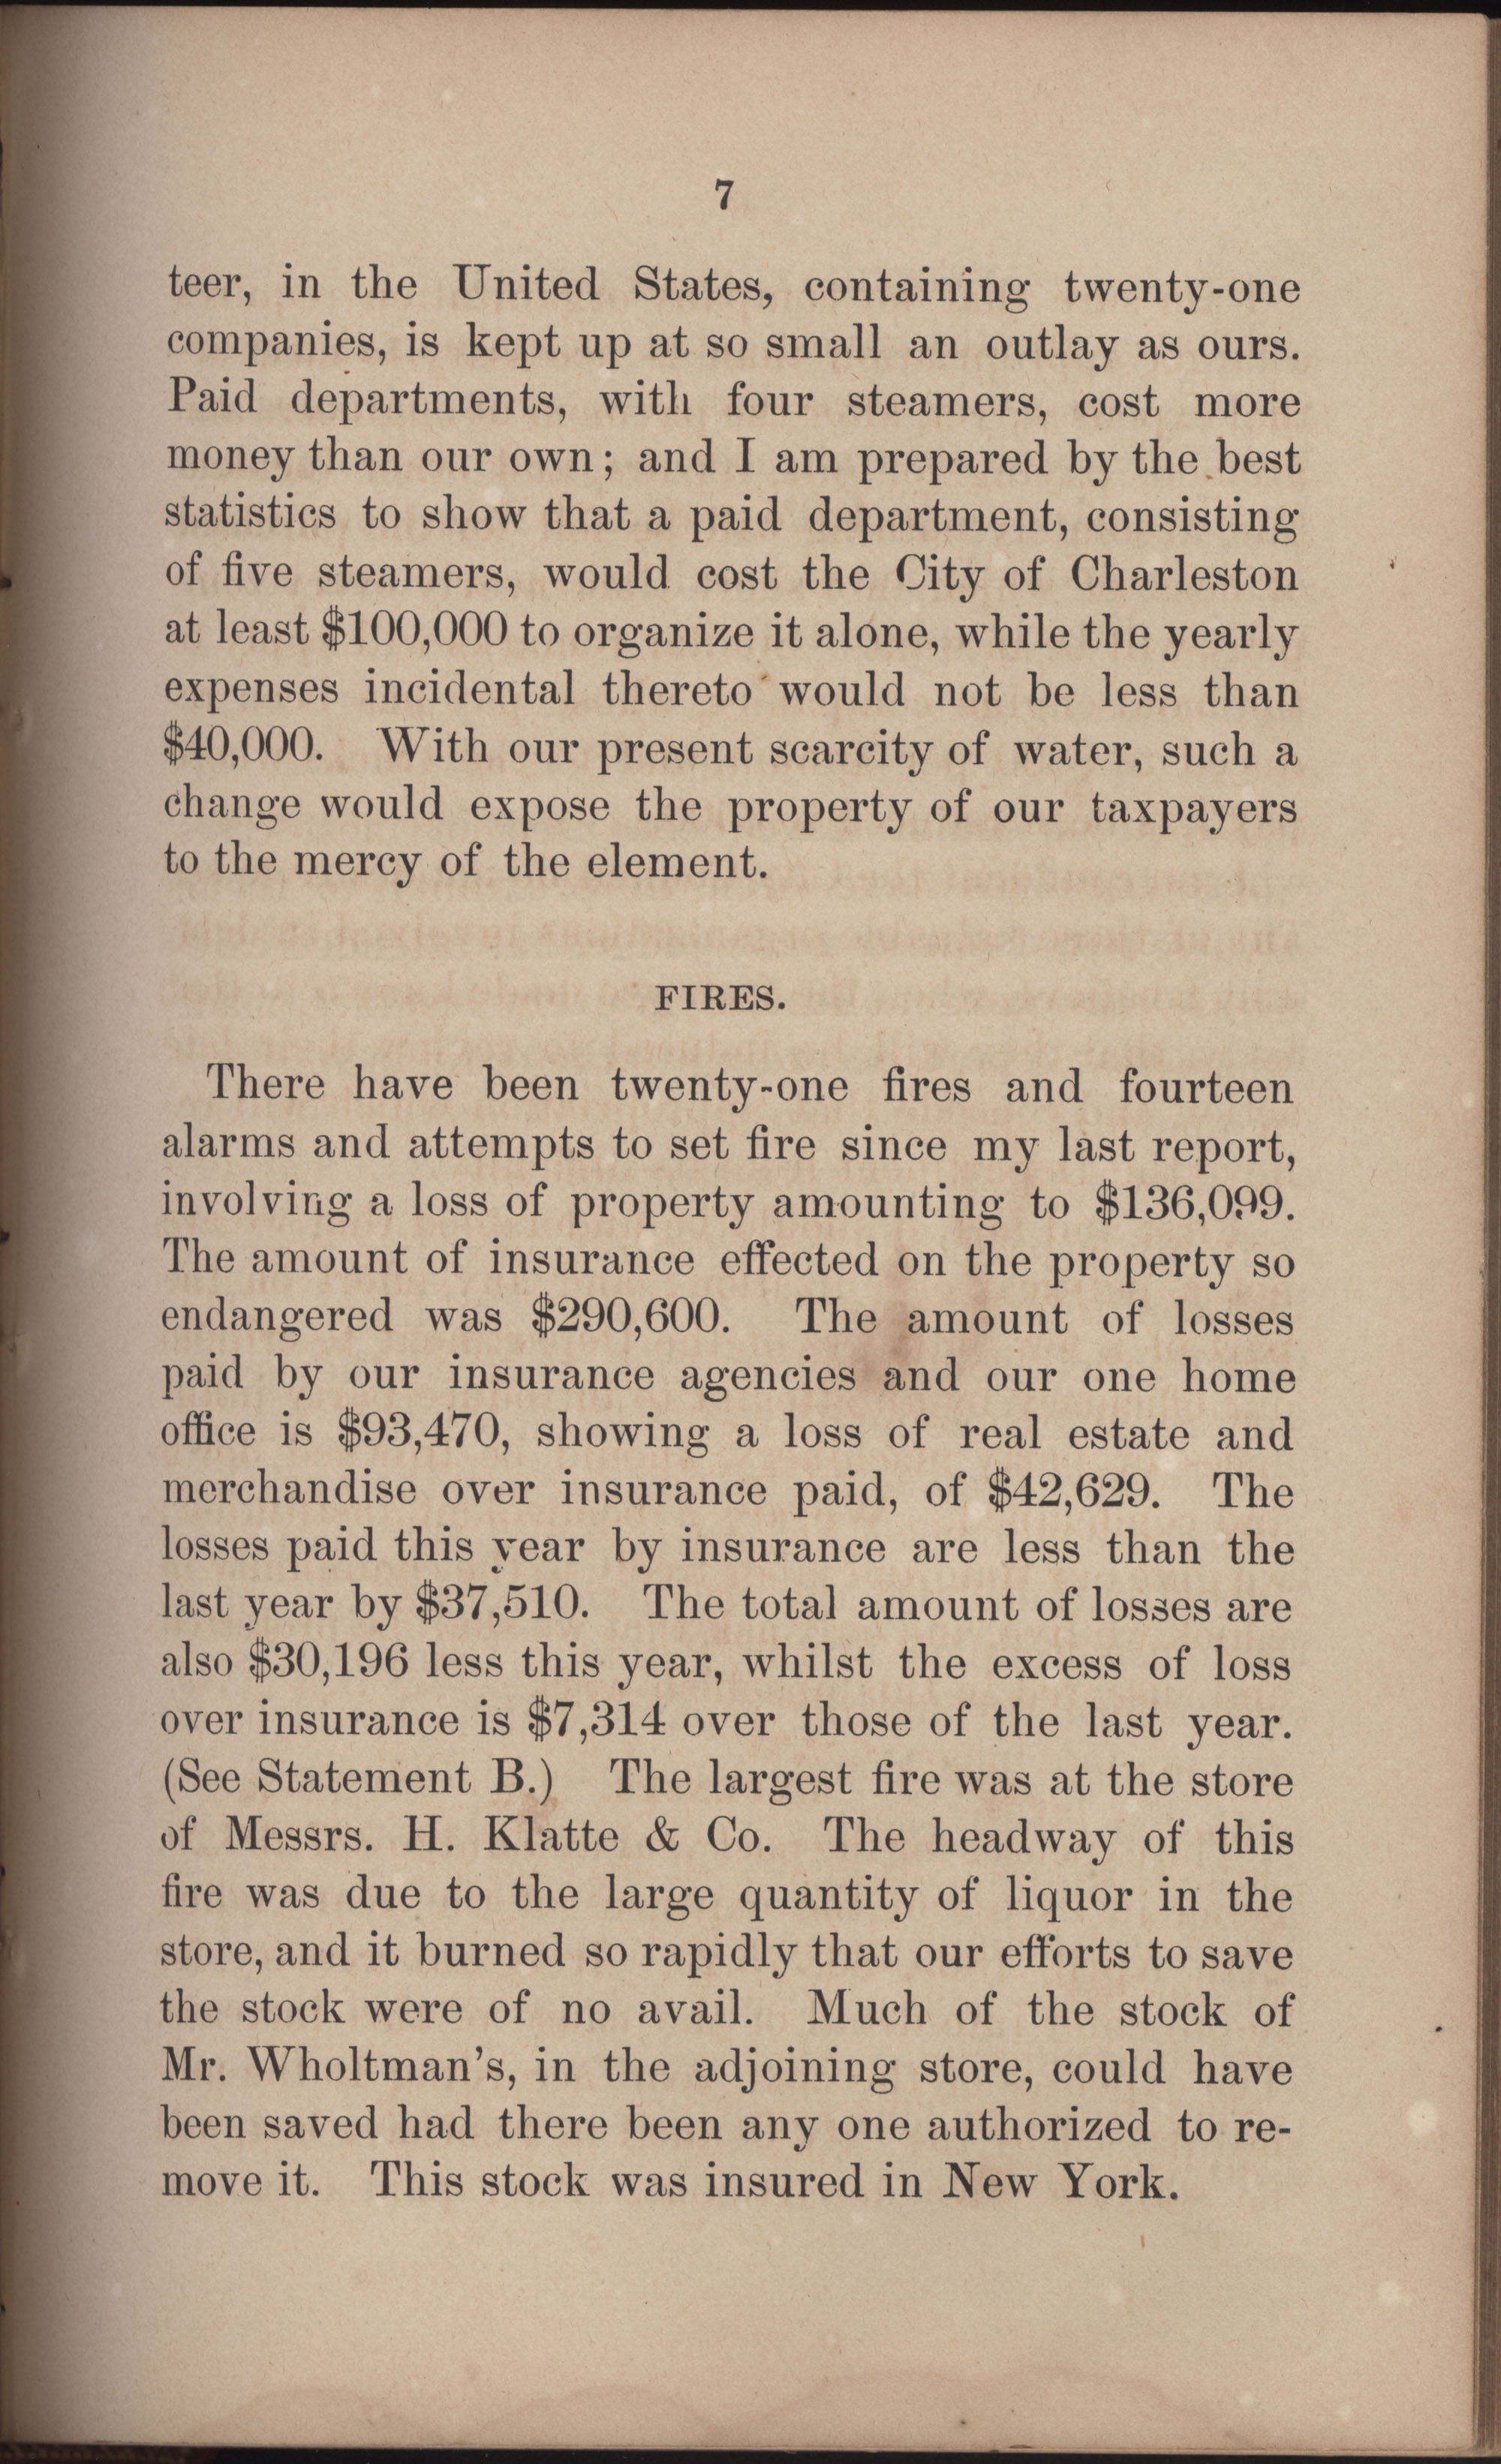 Annual Report of the Chief of the Fire Department of the City of Charleston, page 298